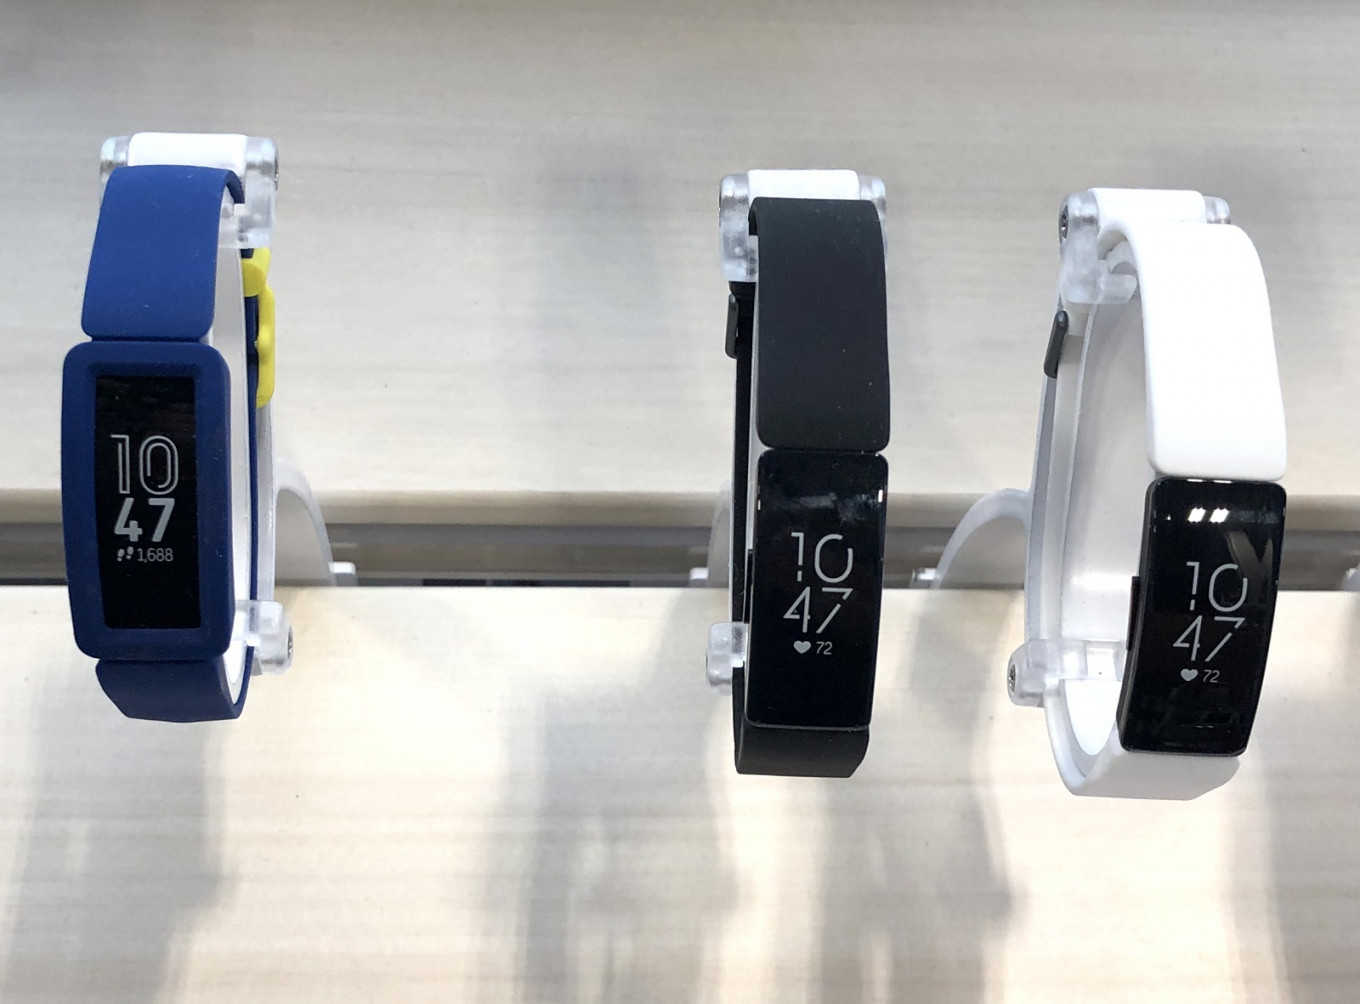 Fitbit unveils stress-tracking smartwatch with Google deal pending – The Jakarta Post – Jakarta Post